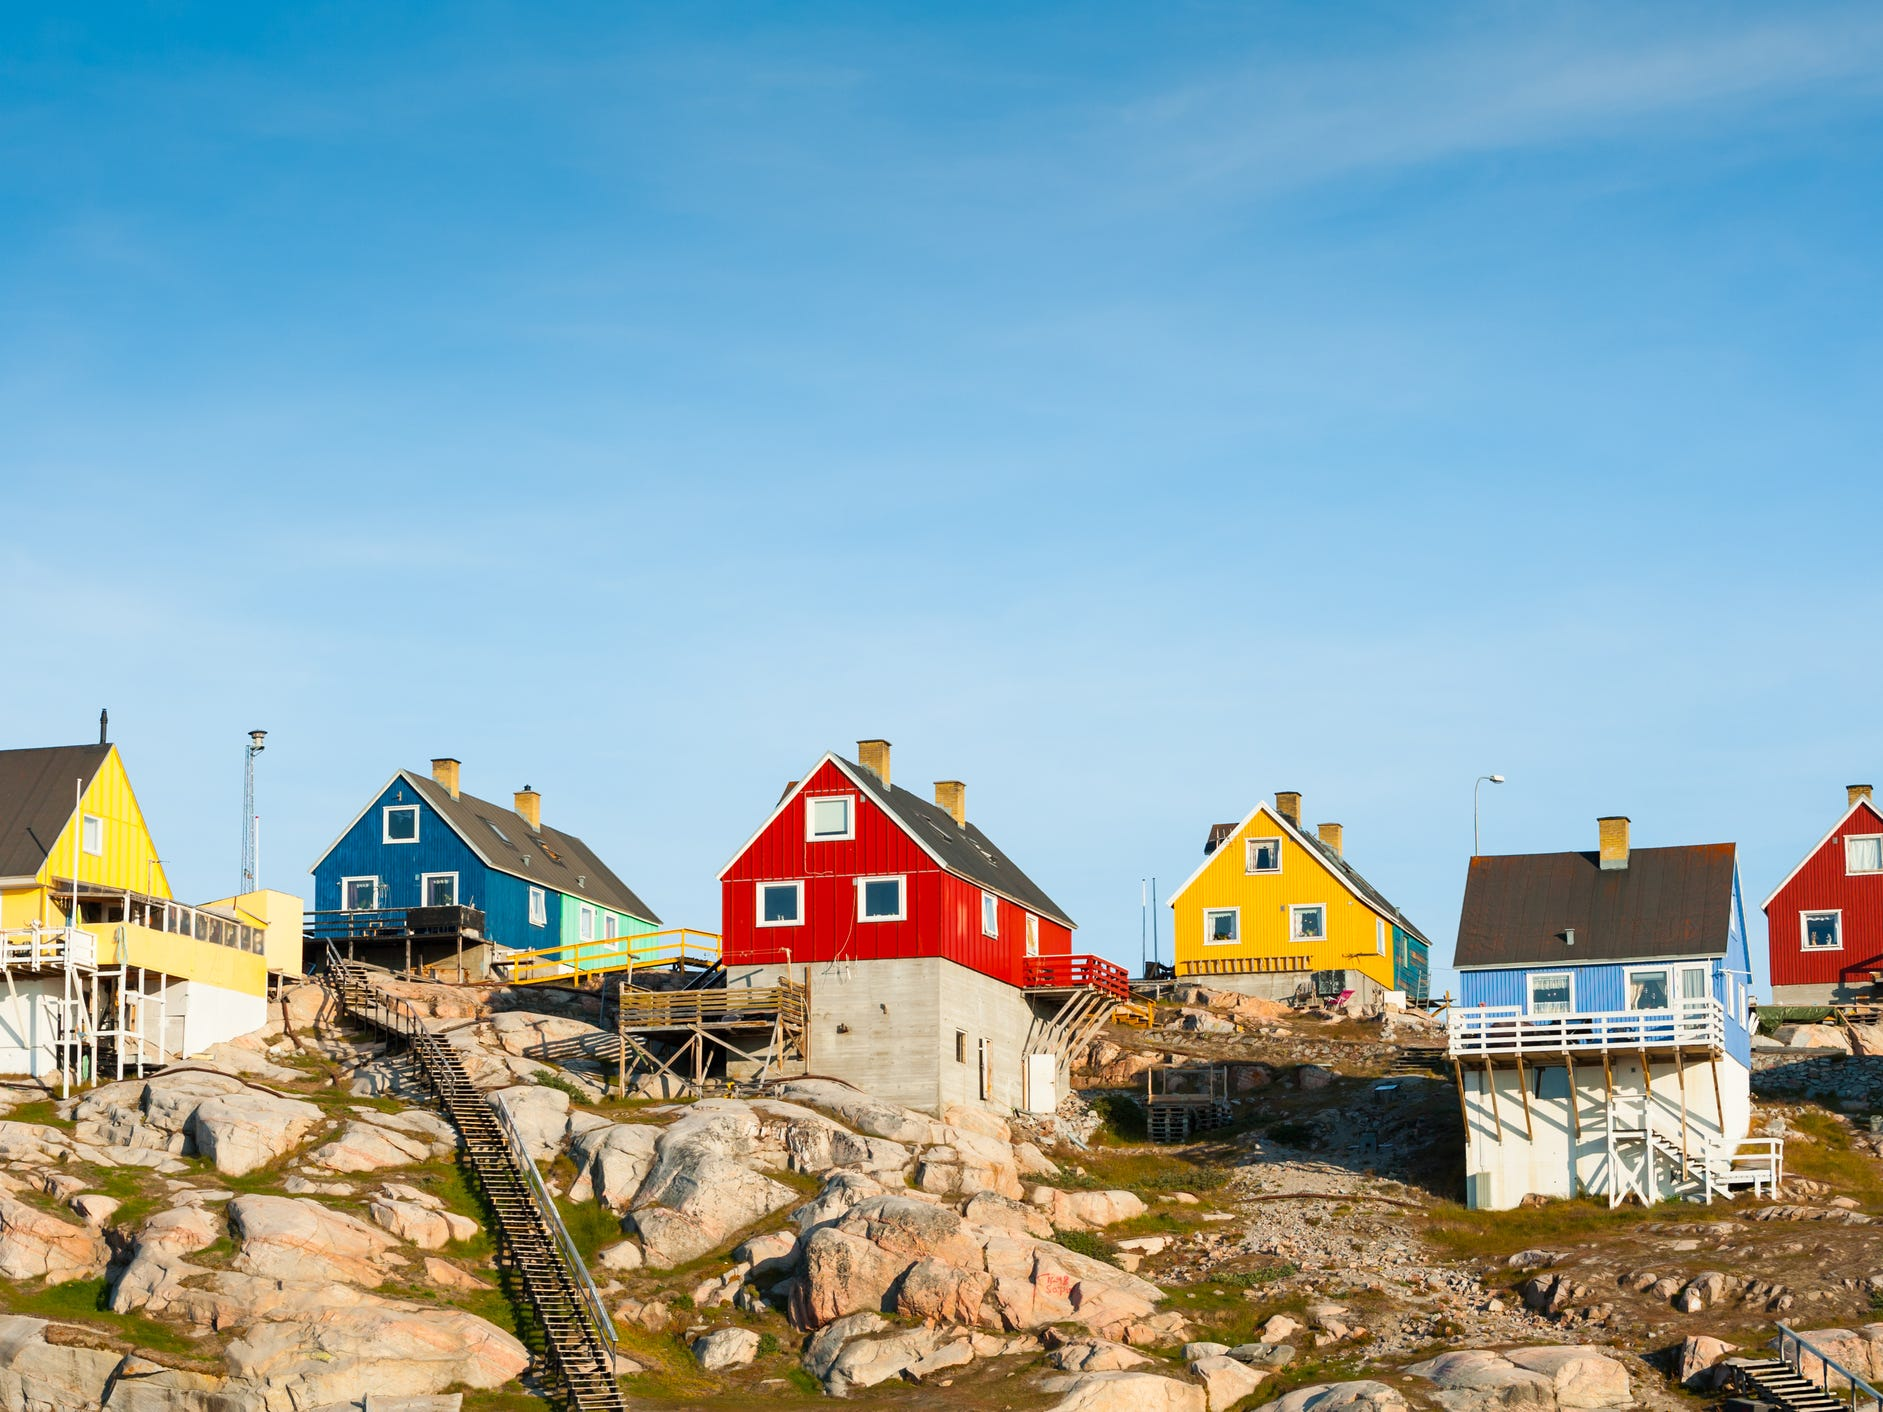 According to Greenlandic tradition, the color of a building indicates its purpose: yellow for hospitals, blue for fish factories, red for commercial properties, and so on. These days, however, you'll see a wider, more whimsical range of colors in Greenlandic towns like Ilulissat.